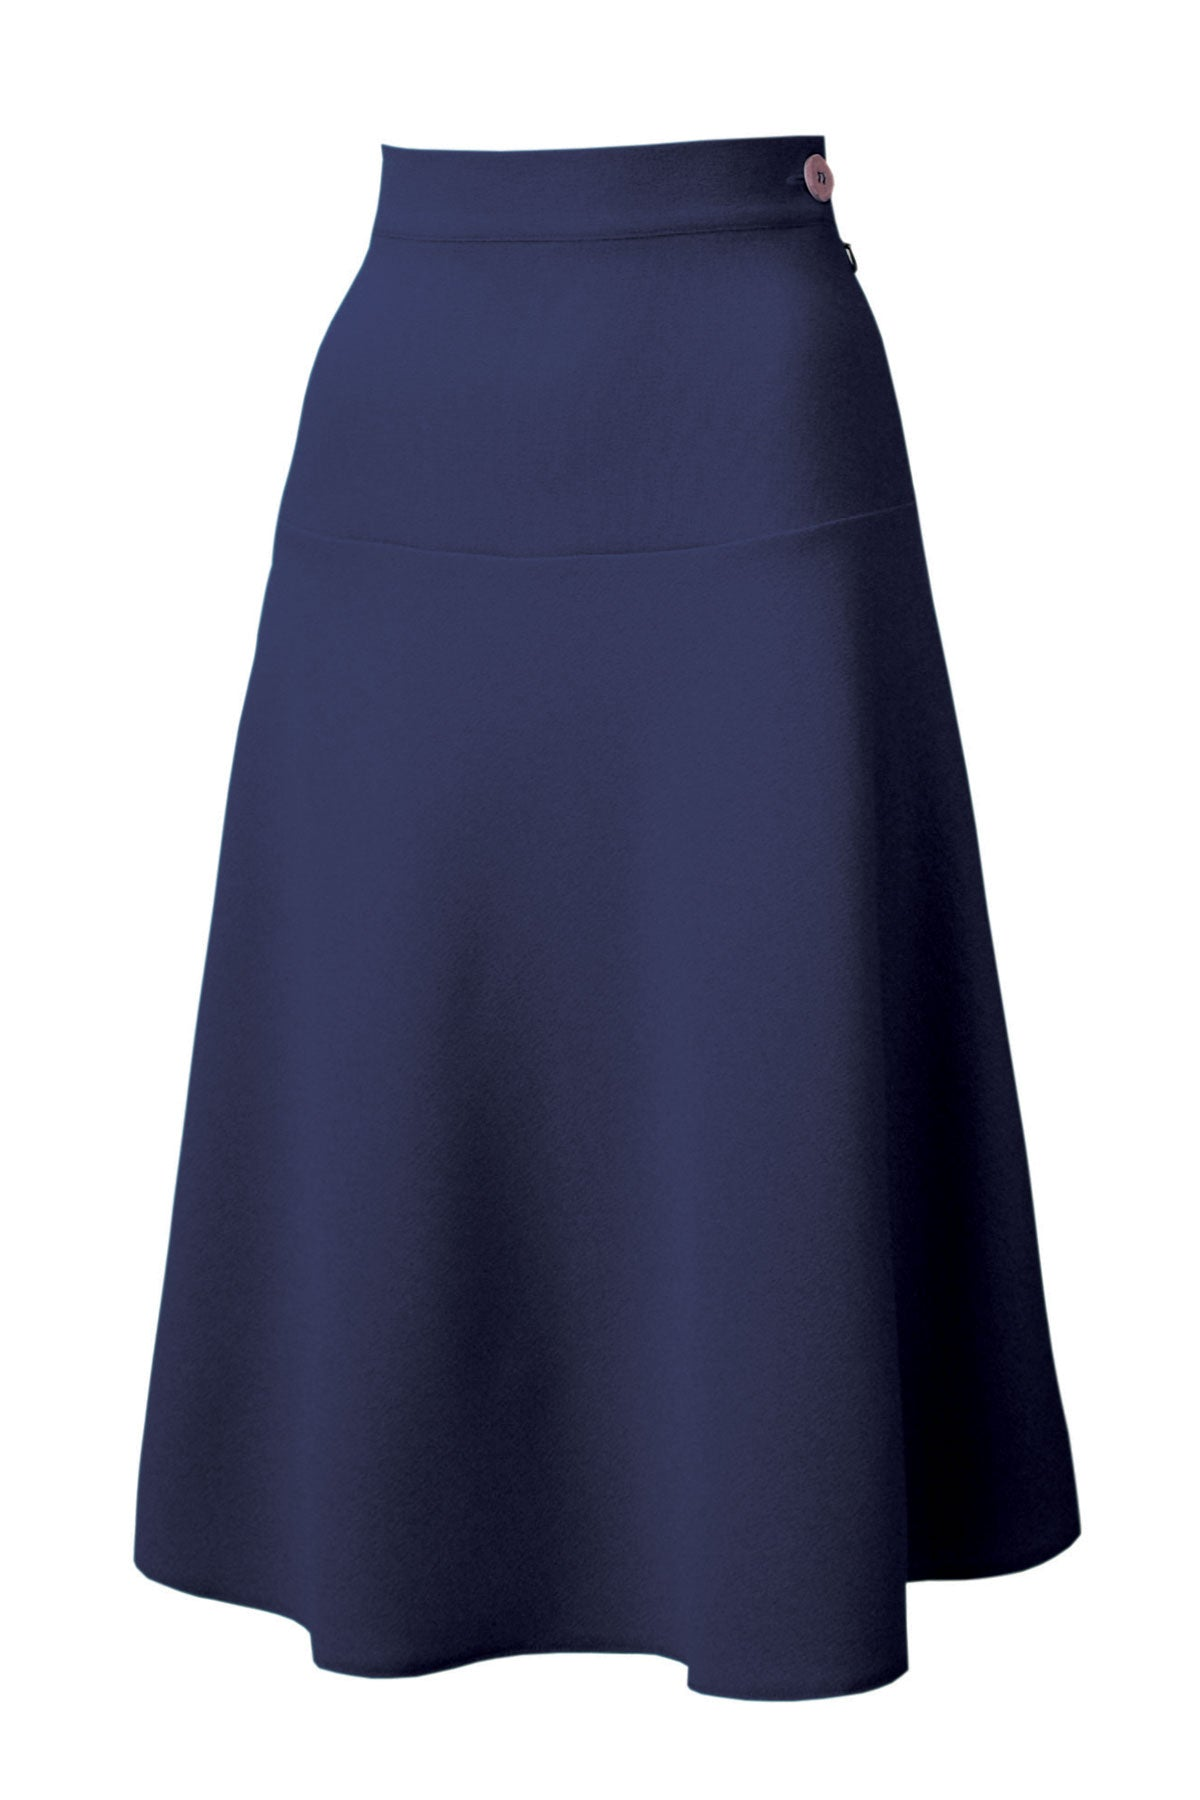 Pretty 40s Navy A line Crepe Swing Skirt - 1940s | Weekend Doll